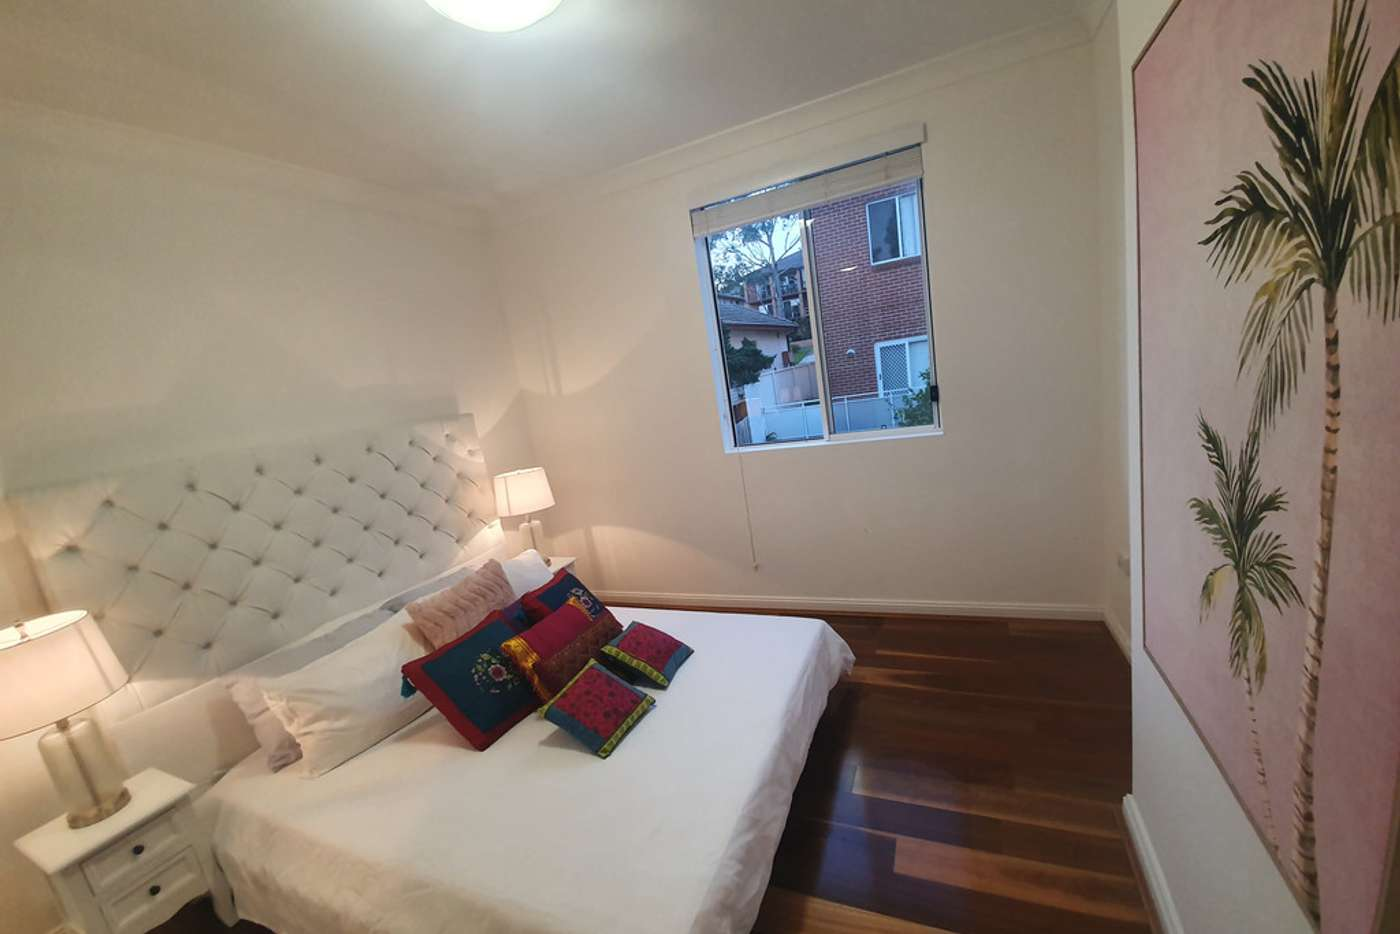 Fifth view of Homely townhouse listing, 9T/11 O'REILLY STREET, Parramatta NSW 2150